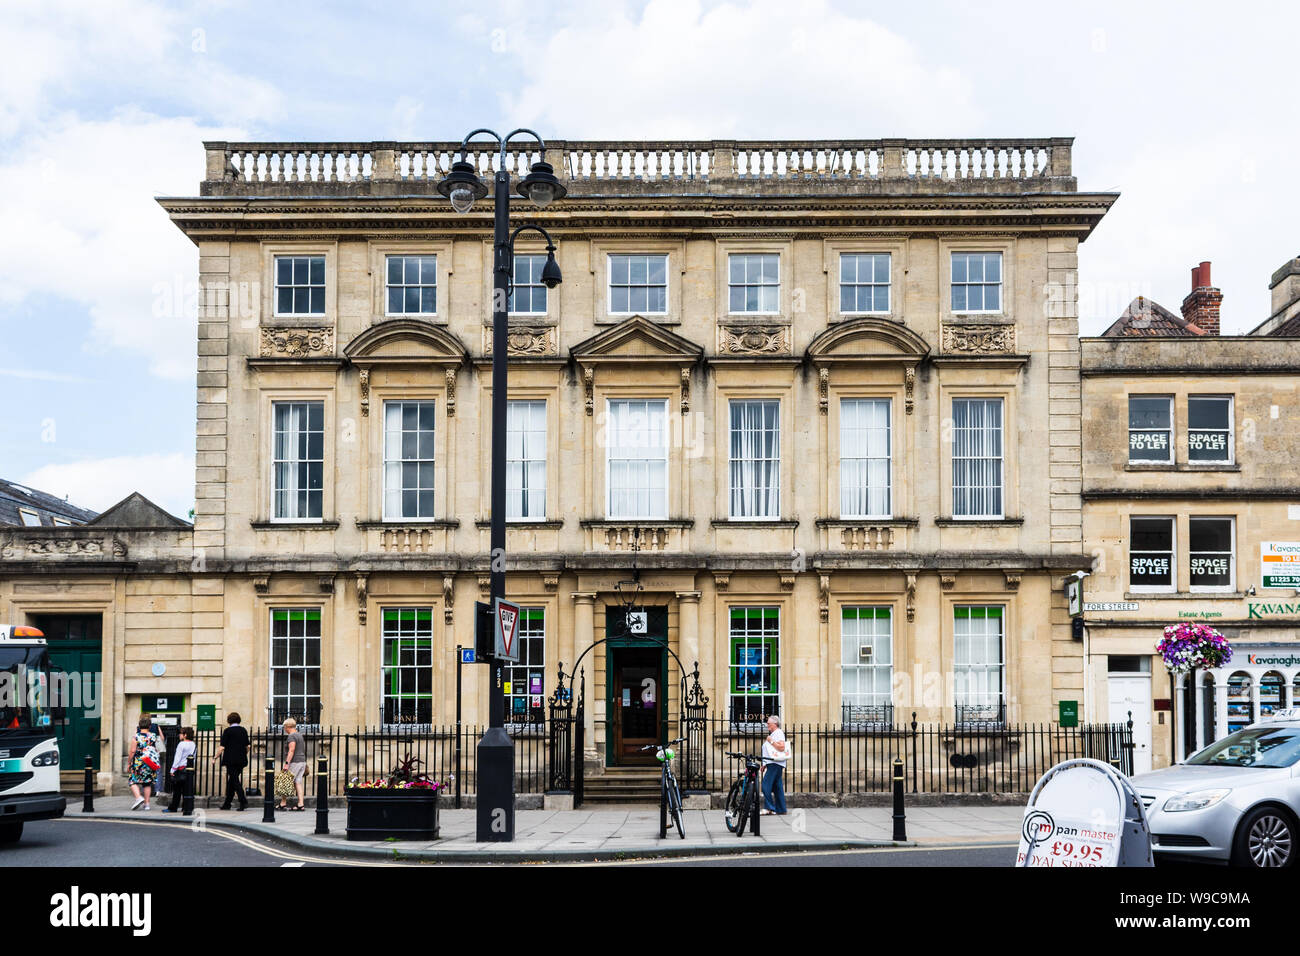 The branch of Lloyds bank in Trowbridge Wiltshire. A grade 1 listed building described as a stately palatial composition from Ashlar stone Stock Photo